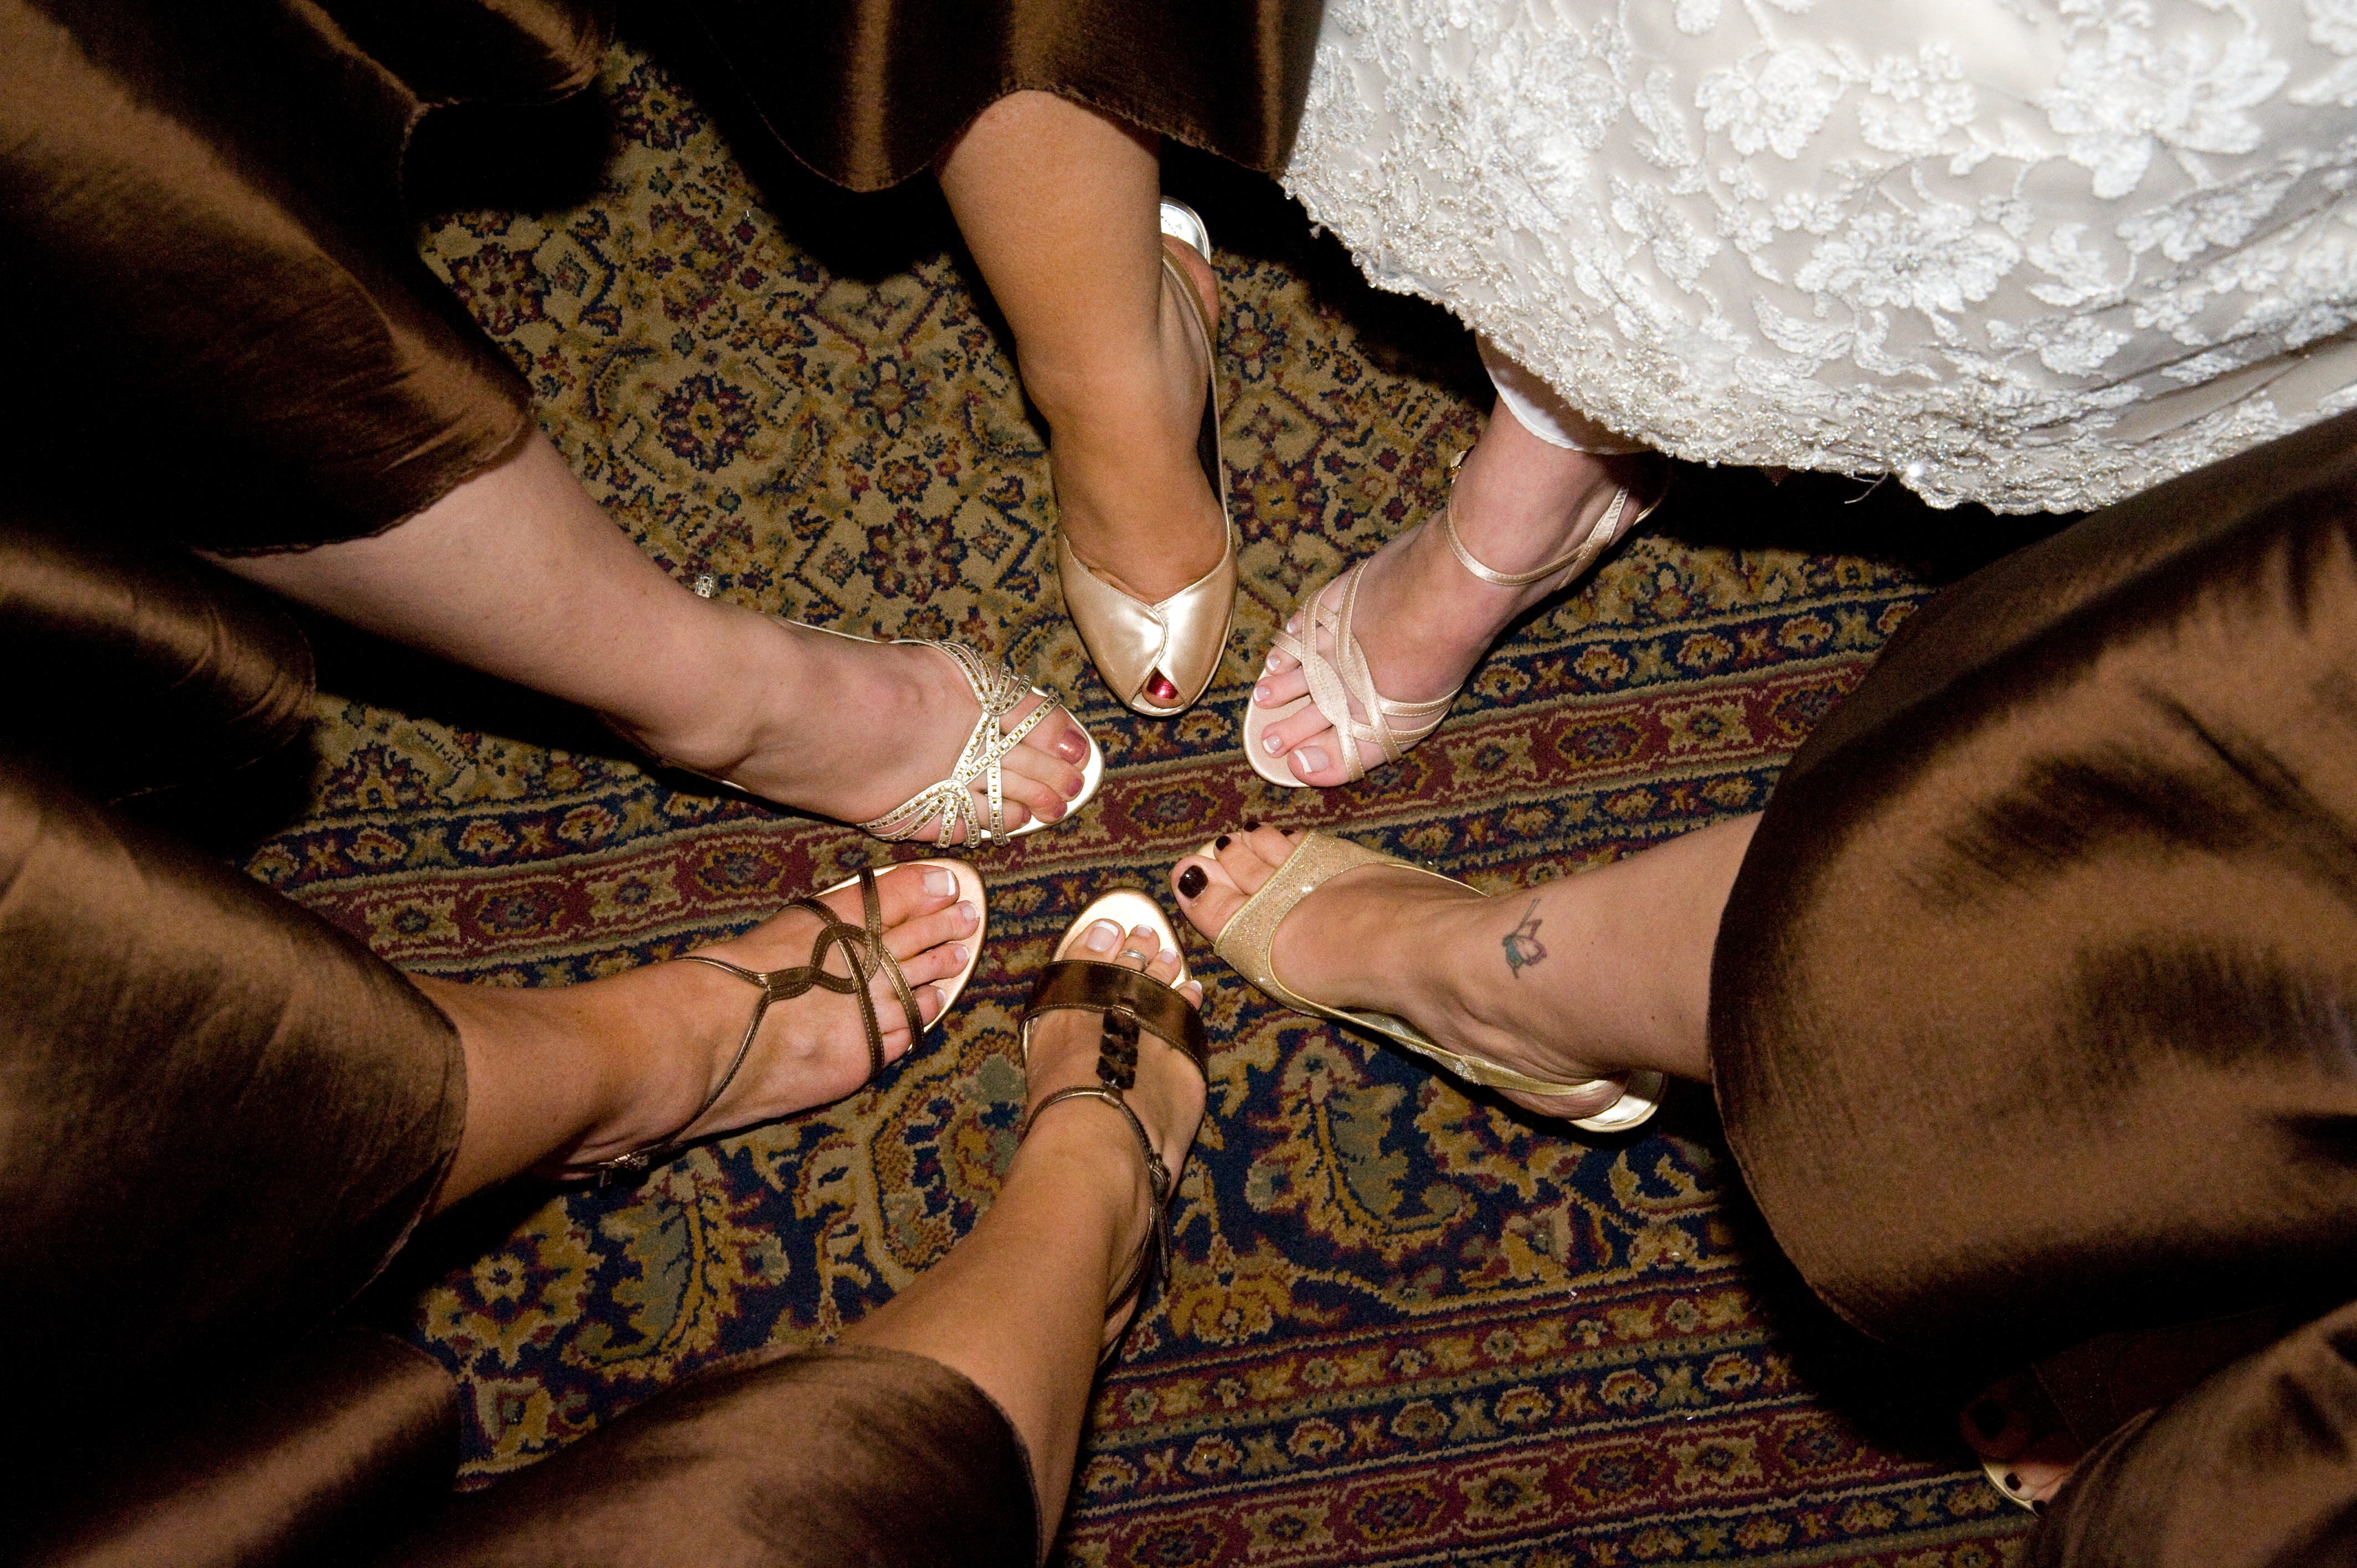 Reception, Flowers & Decor, Bridesmaids, Bridesmaids Dresses, Shoes, Fashion, brown, gold, Feet, Nmd photography